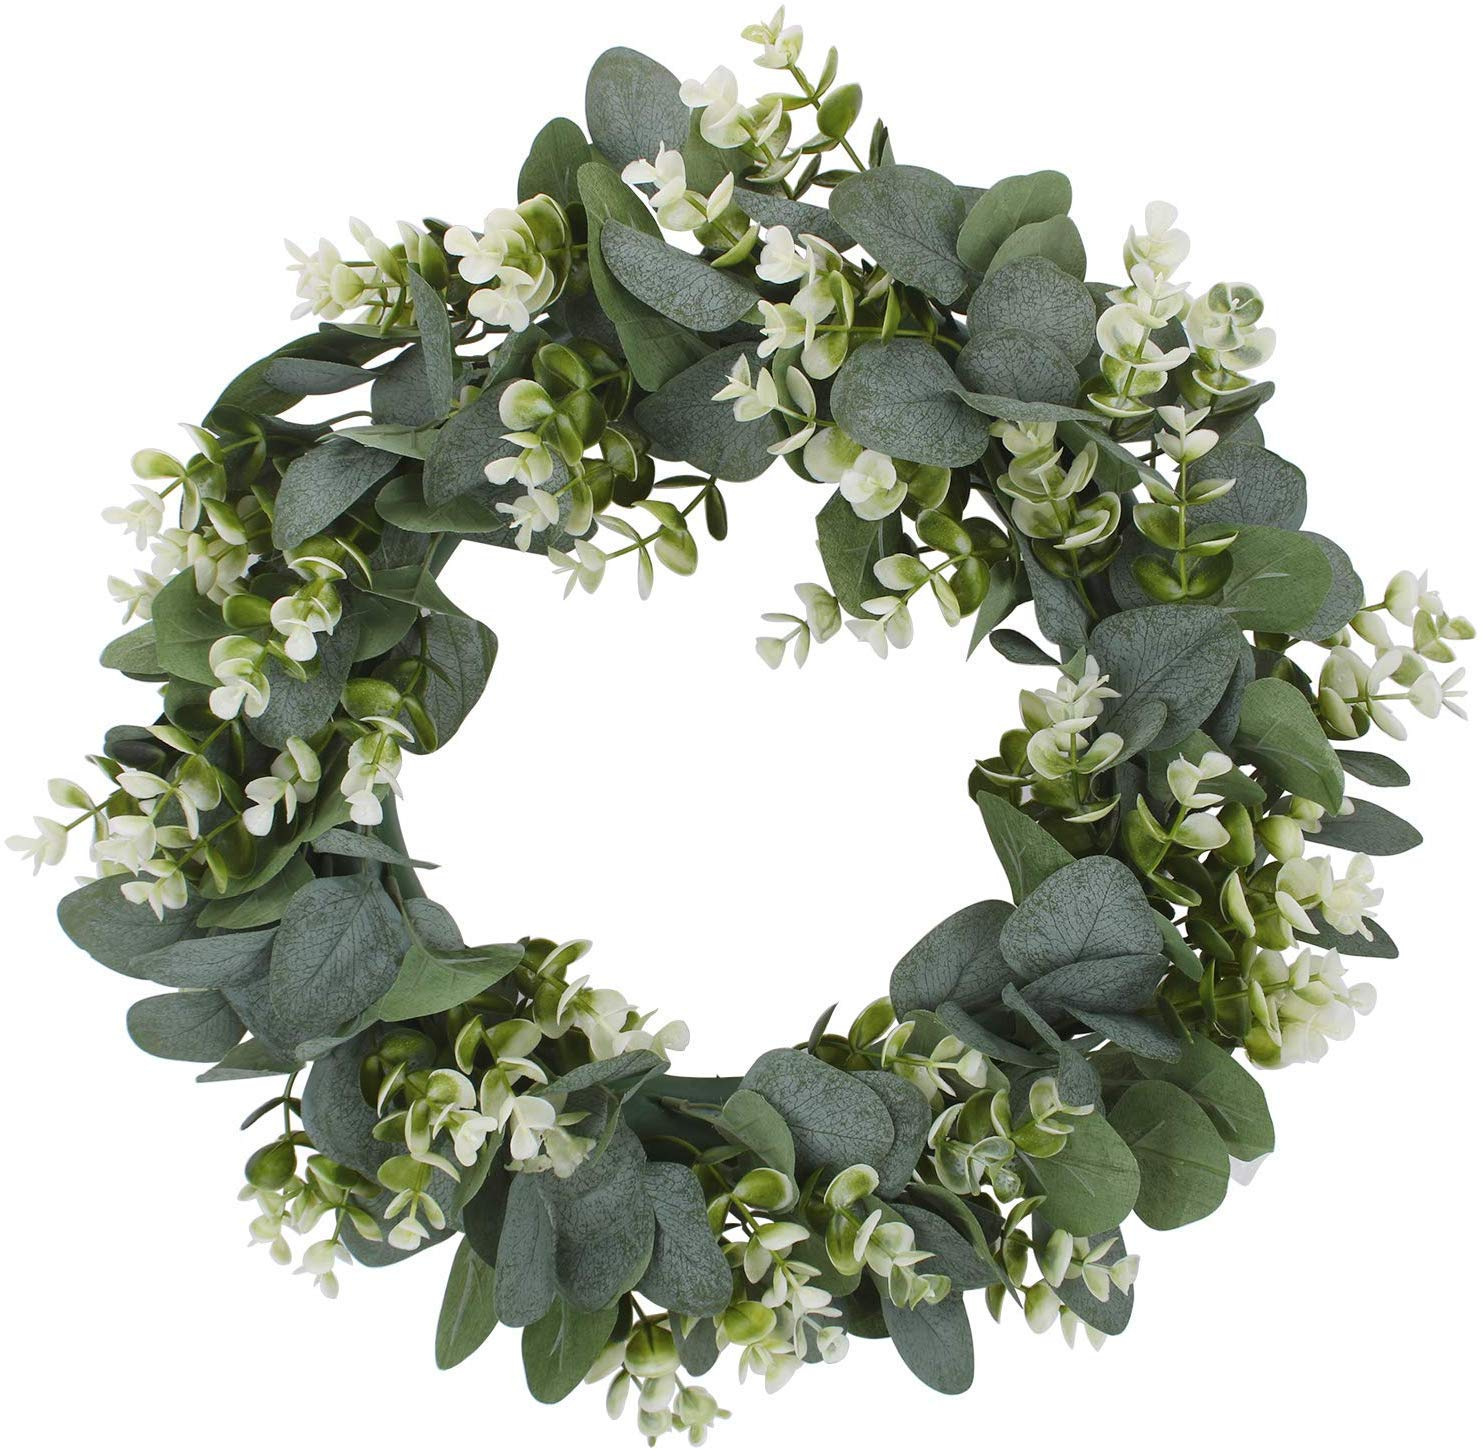 "PARTYLAB Artificial 17"" Eucalyptus Wreath Floral Garland for Summer Fall & Spring Good for Porch Farmhouse Patio Garden Perfect Flower Decoration for Home Front Door Wall Decor Indoors & Outdoor"